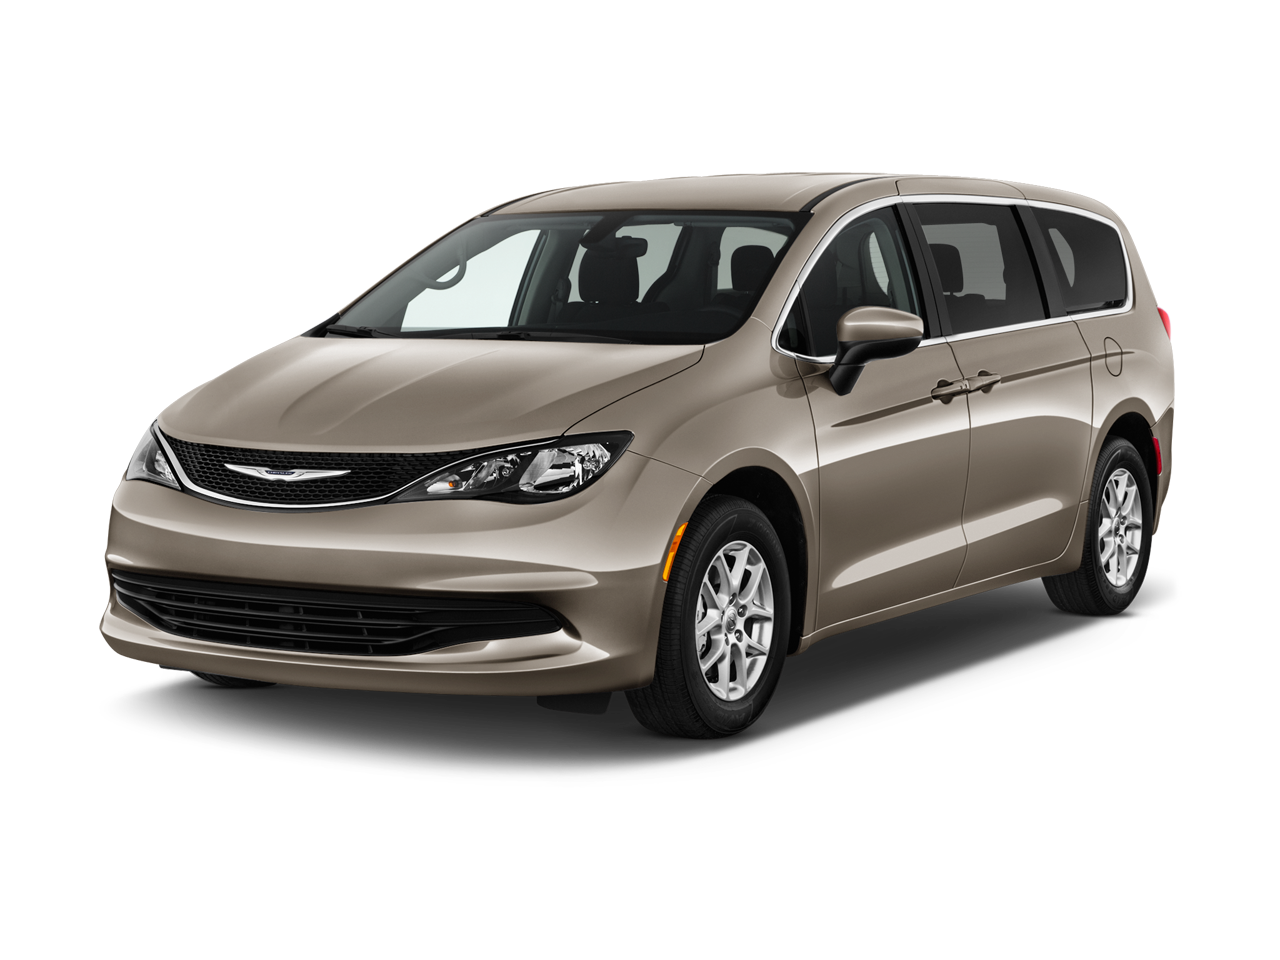 new 2017 chrysler pacifica limited near laurel ms kims no bull. Black Bedroom Furniture Sets. Home Design Ideas